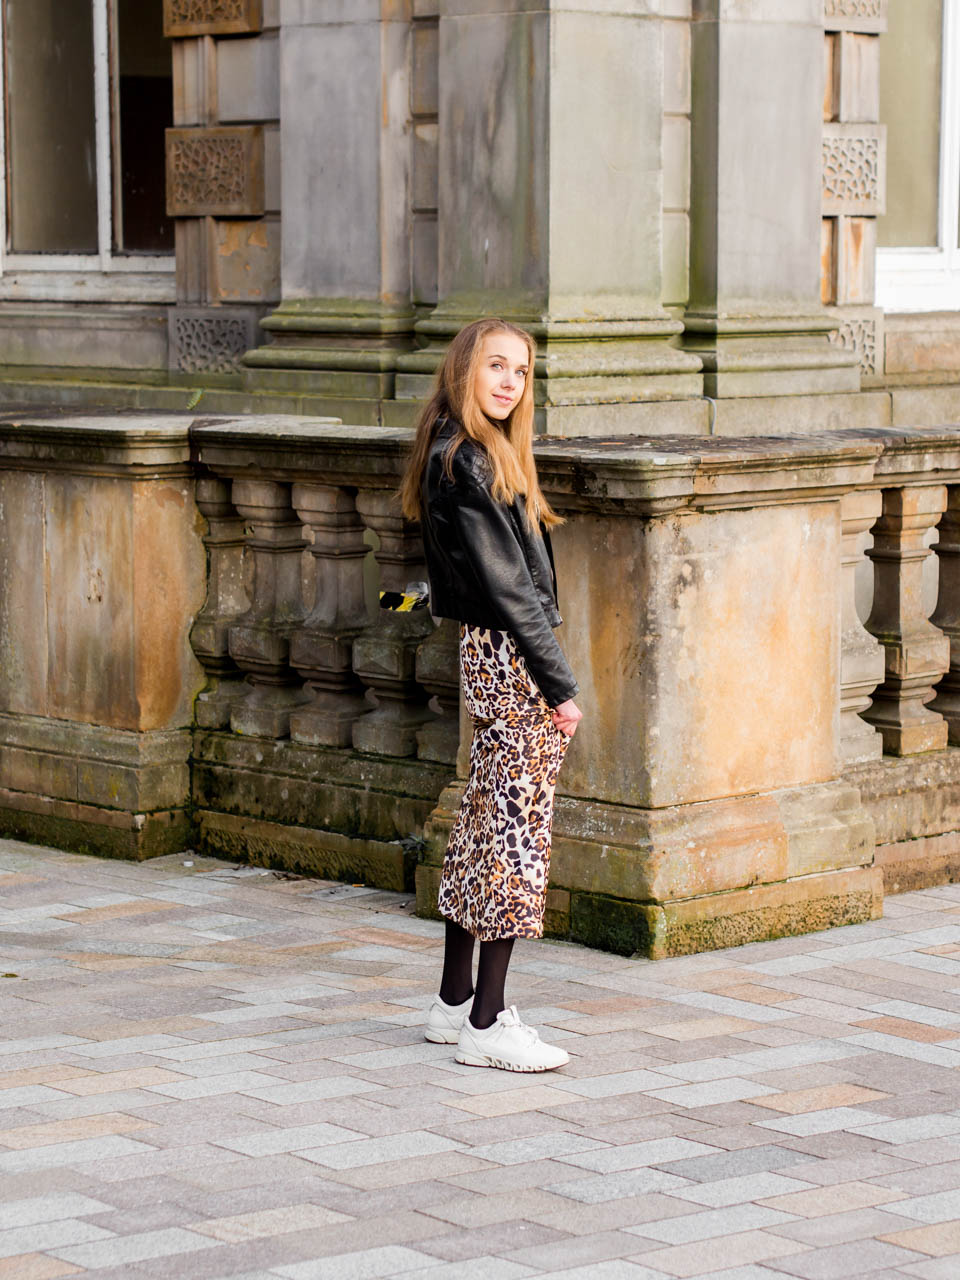 Leopard print midi skirt and cashmere turtleneck autumn outfit